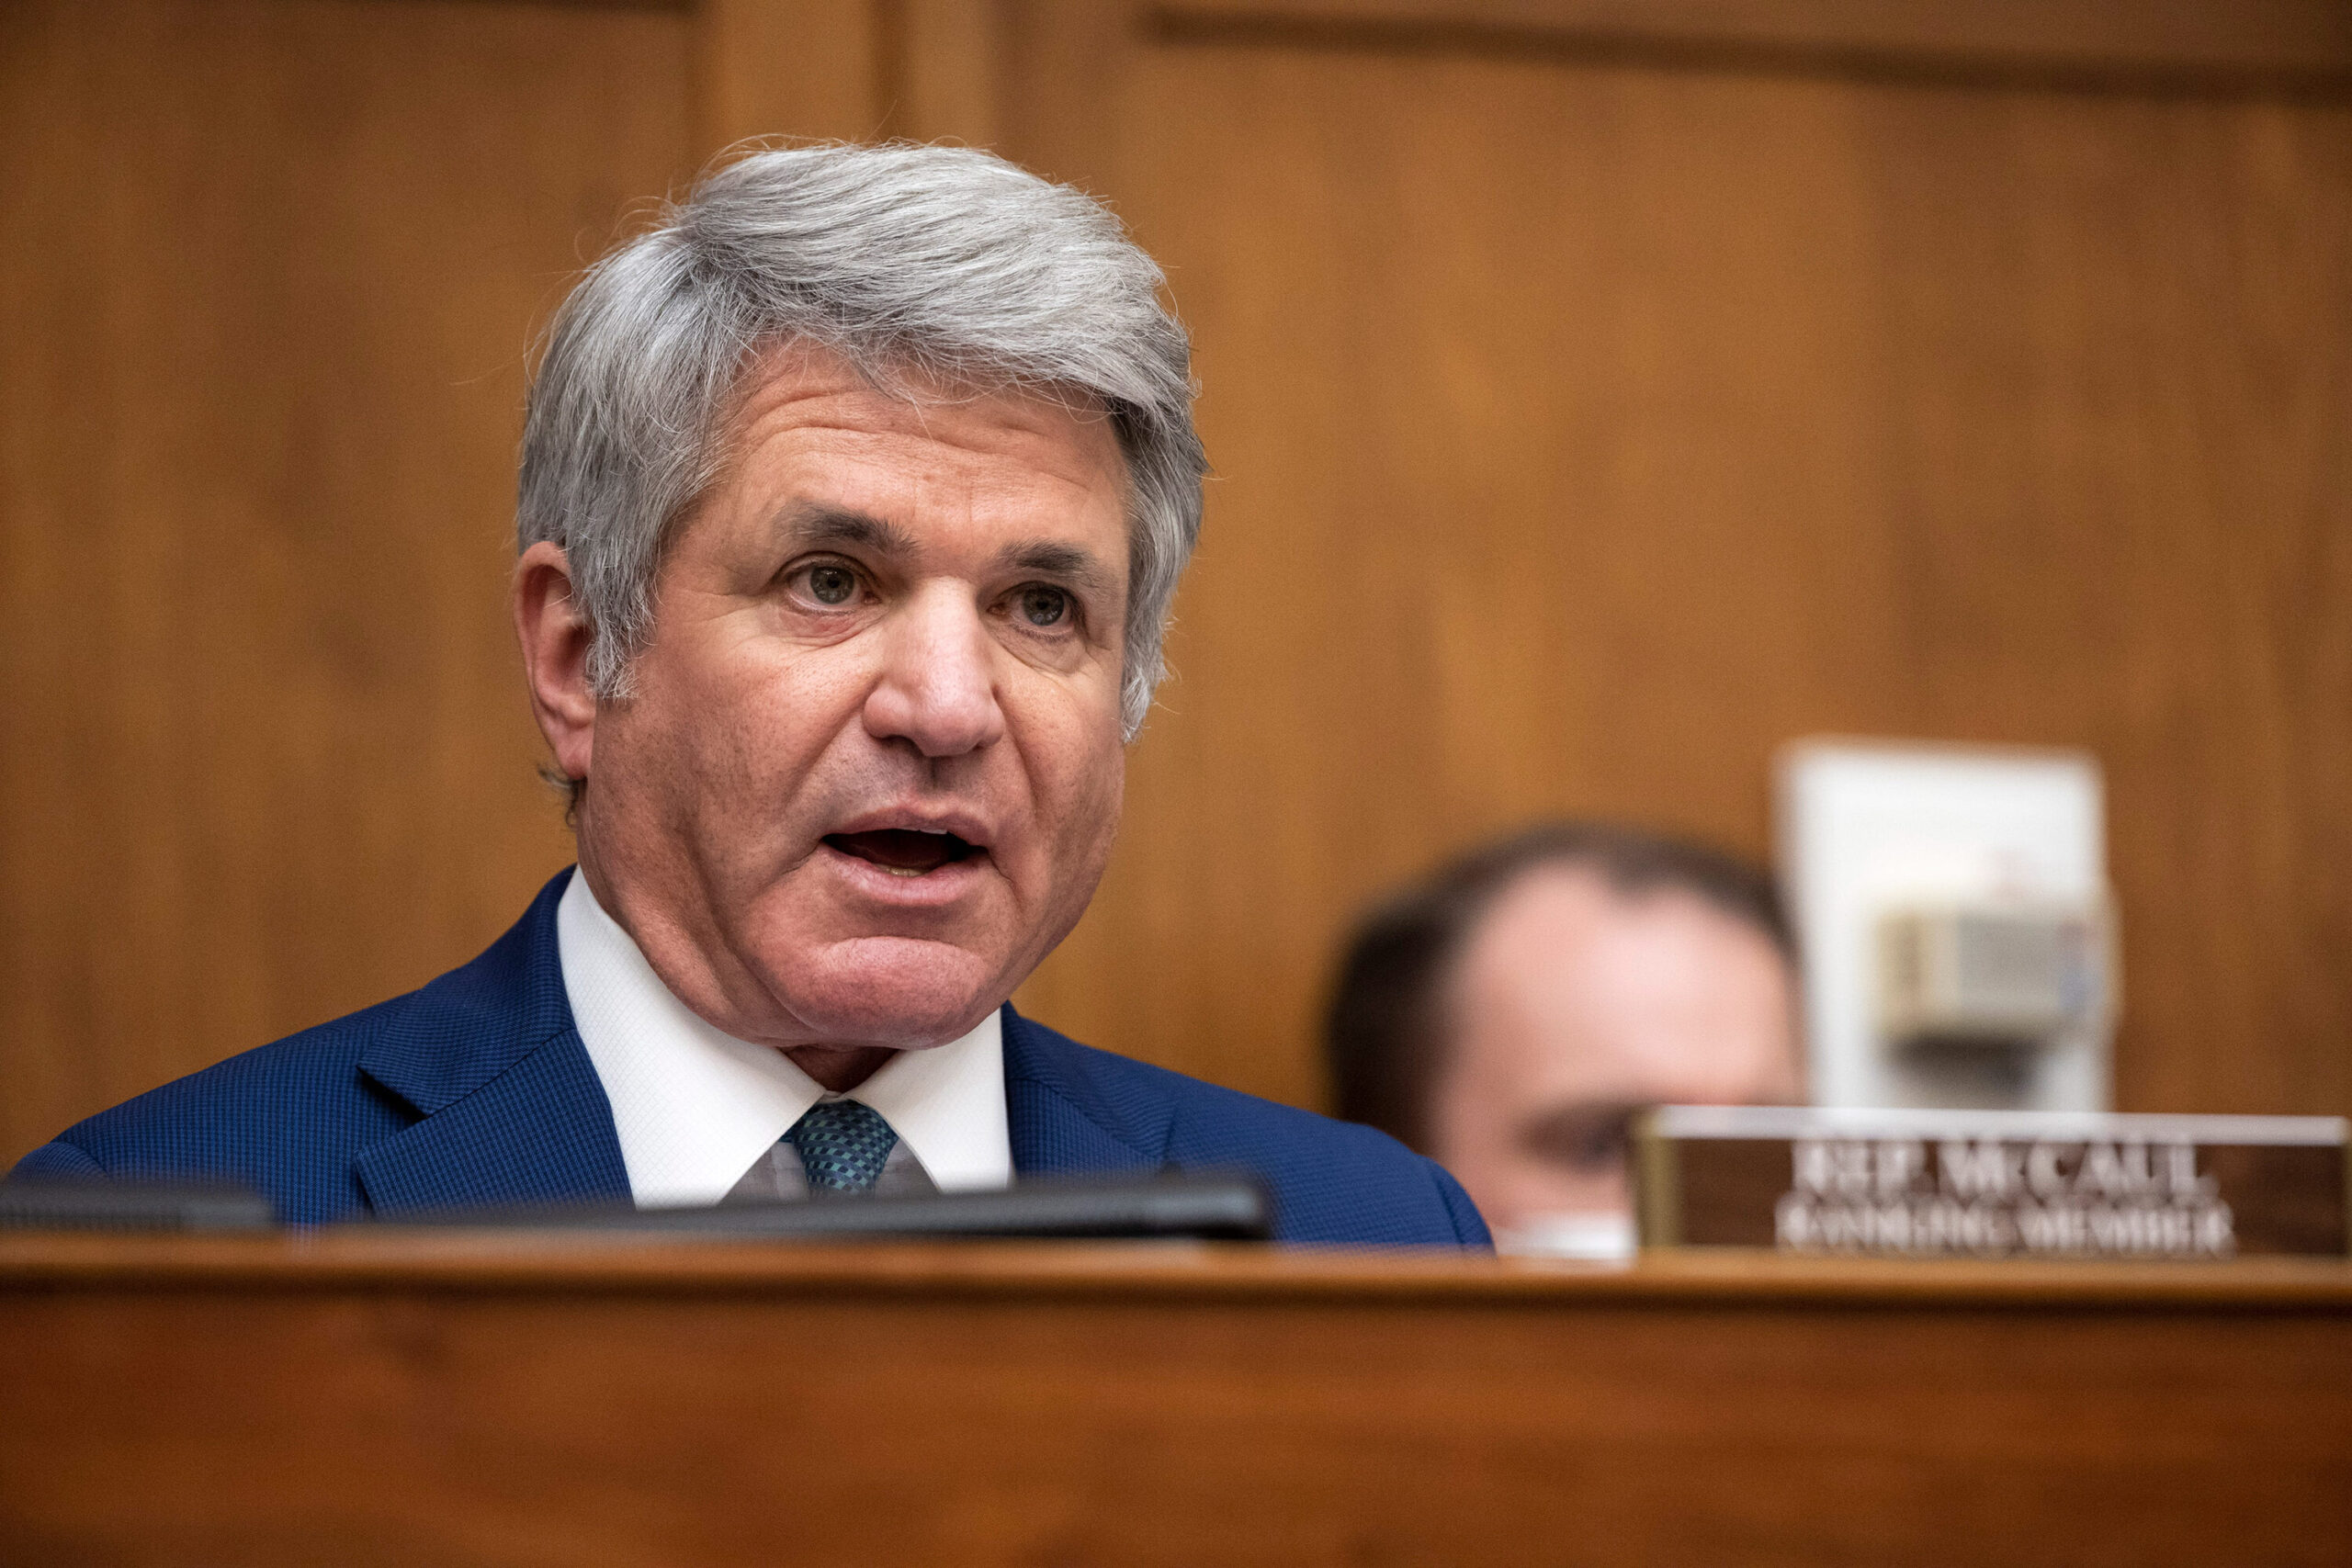 <i>Ting Shen/Pool/Getty Images</i><br/>Ranking Member Rep. Michael McCaul (R-TX) slammed the Biden administration over the rapidly deteriorating situation in Afghanistan.